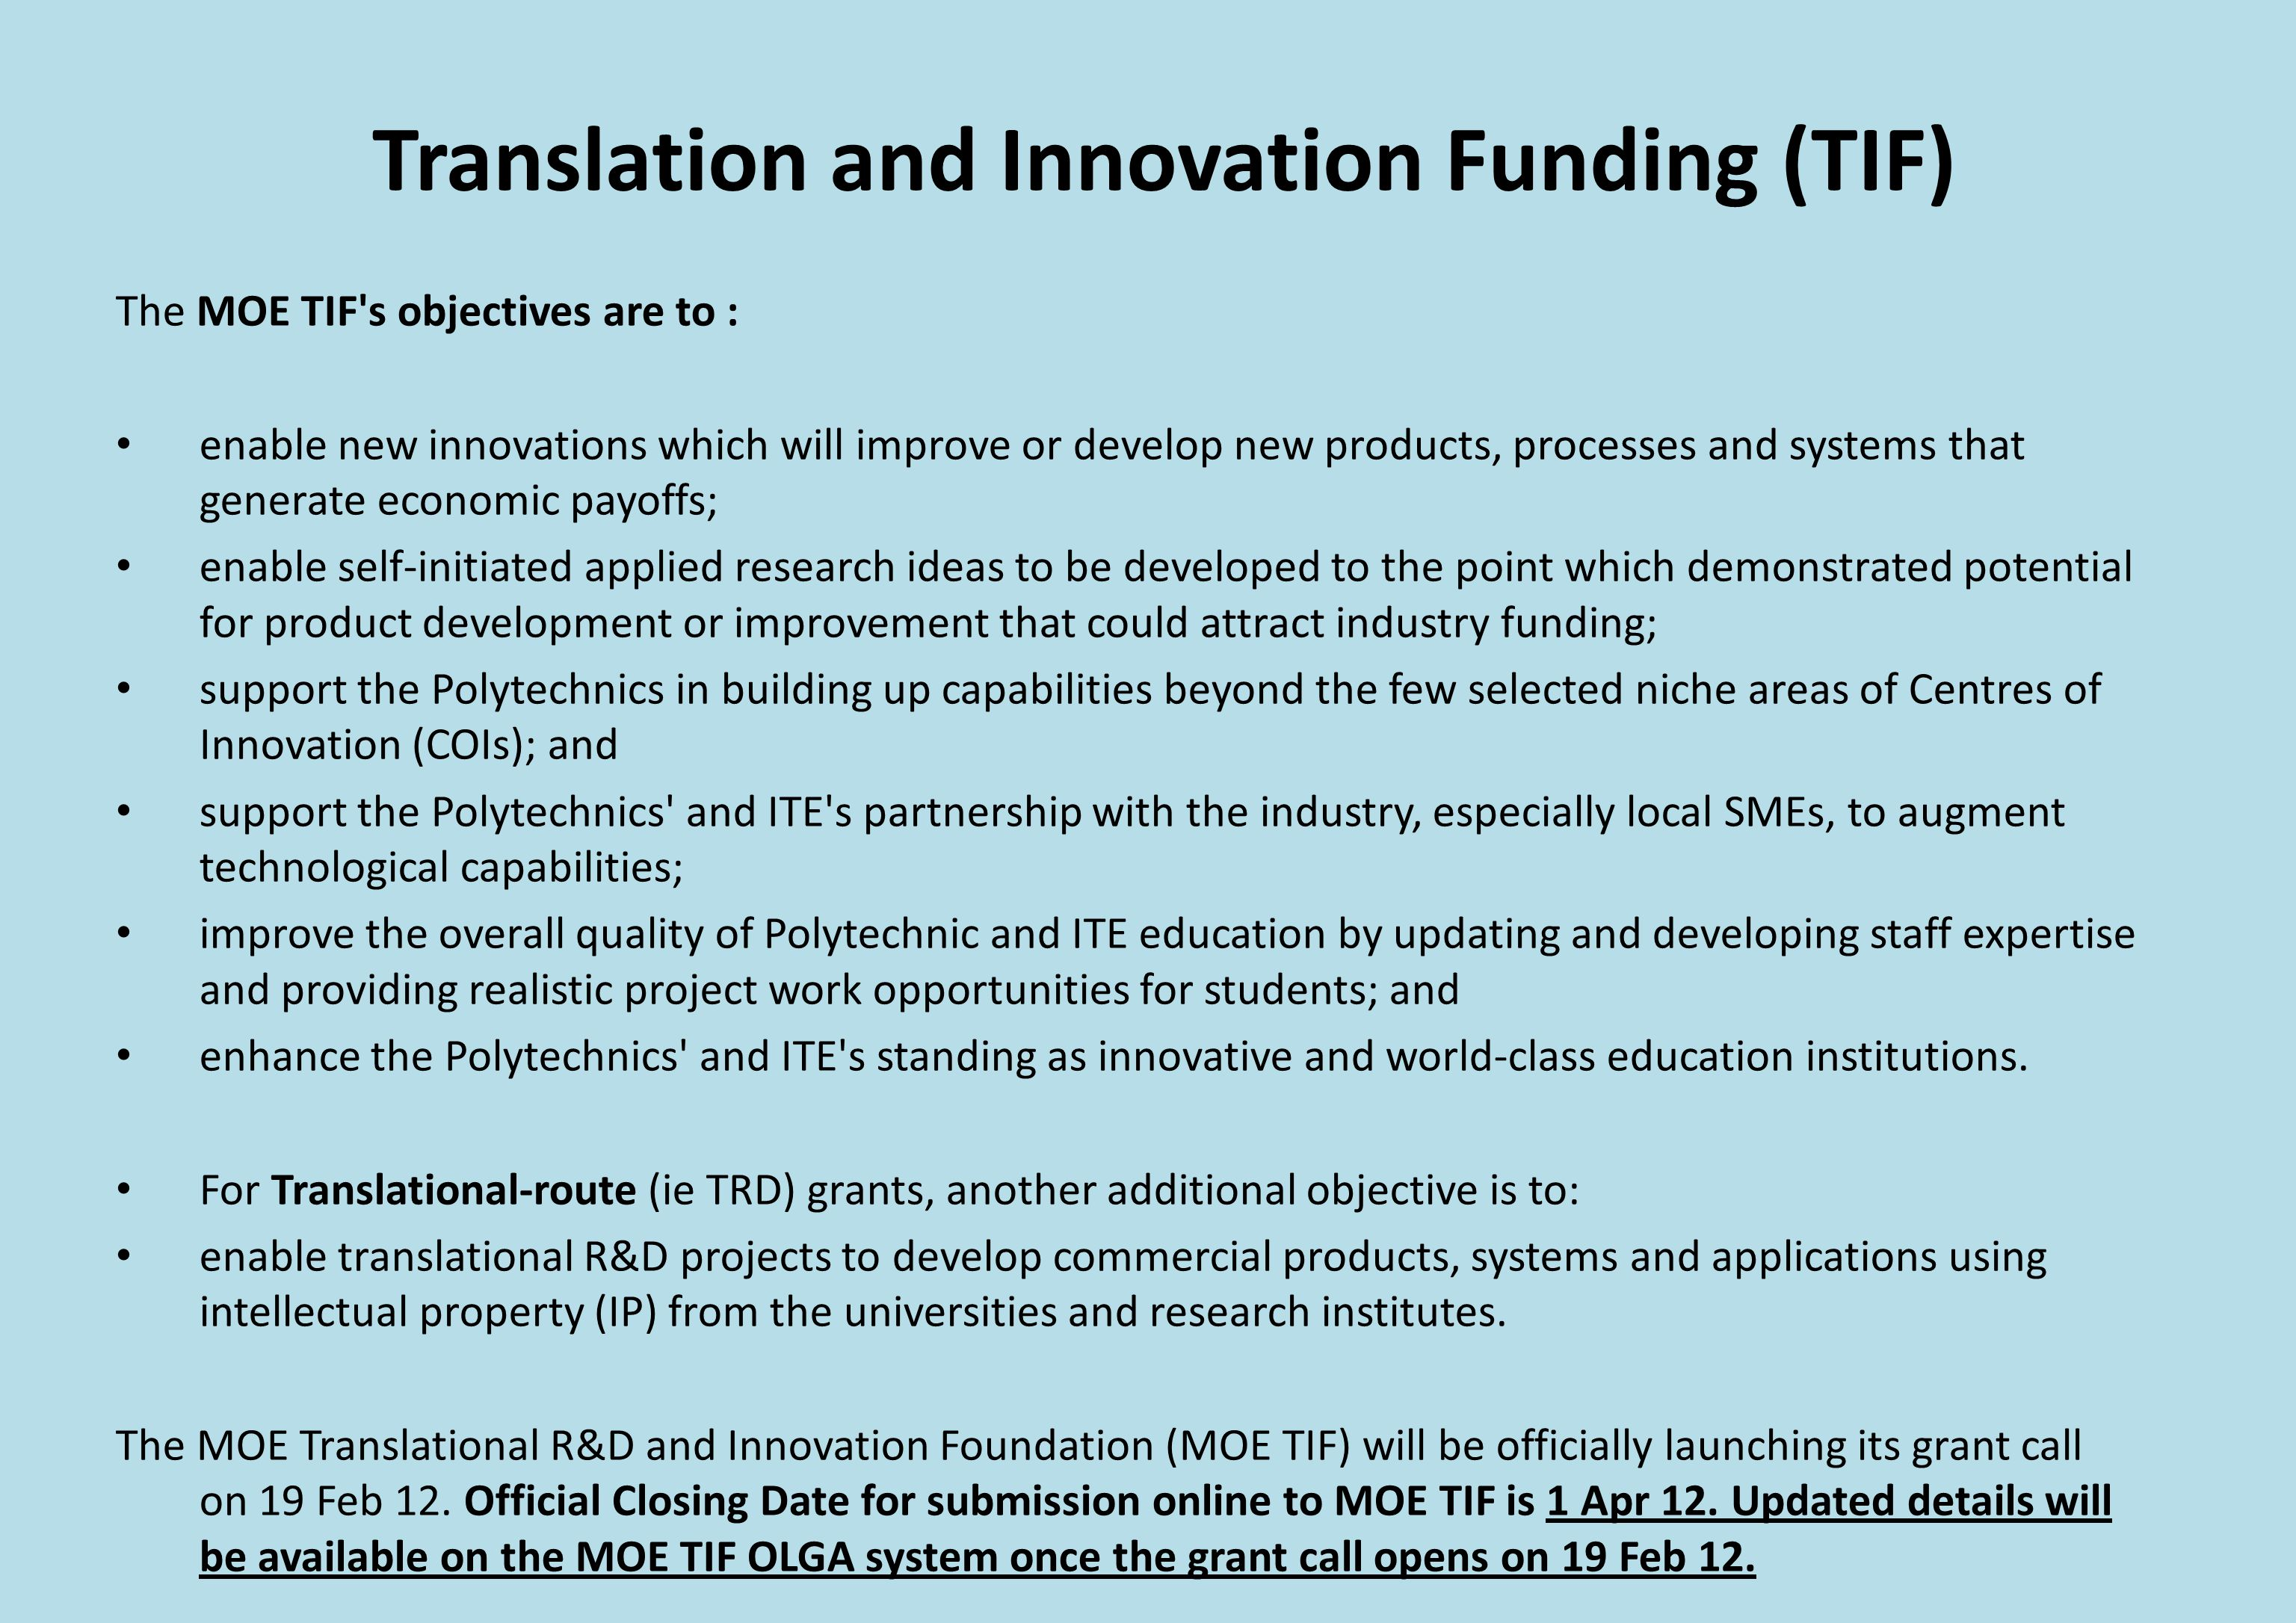 Translation and Innovation Funding (TIF) The MOE TIF s objectives are to : enable new innovations which will improve or develop new products, processes and systems that generate economic payoffs; enable self-initiated applied research ideas to be developed to the point which demonstrated potential for product development or improvement that could attract industry funding; support the Polytechnics in building up capabilities beyond the few selected niche areas of Centres of Innovation (COIs); and support the Polytechnics and ITE s partnership with the industry, especially local SMEs, to augment technological capabilities; improve the overall quality of Polytechnic and ITE education by updating and developing staff expertise and providing realistic project work opportunities for students; and enhance the Polytechnics and ITE s standing as innovative and world-class education institutions.